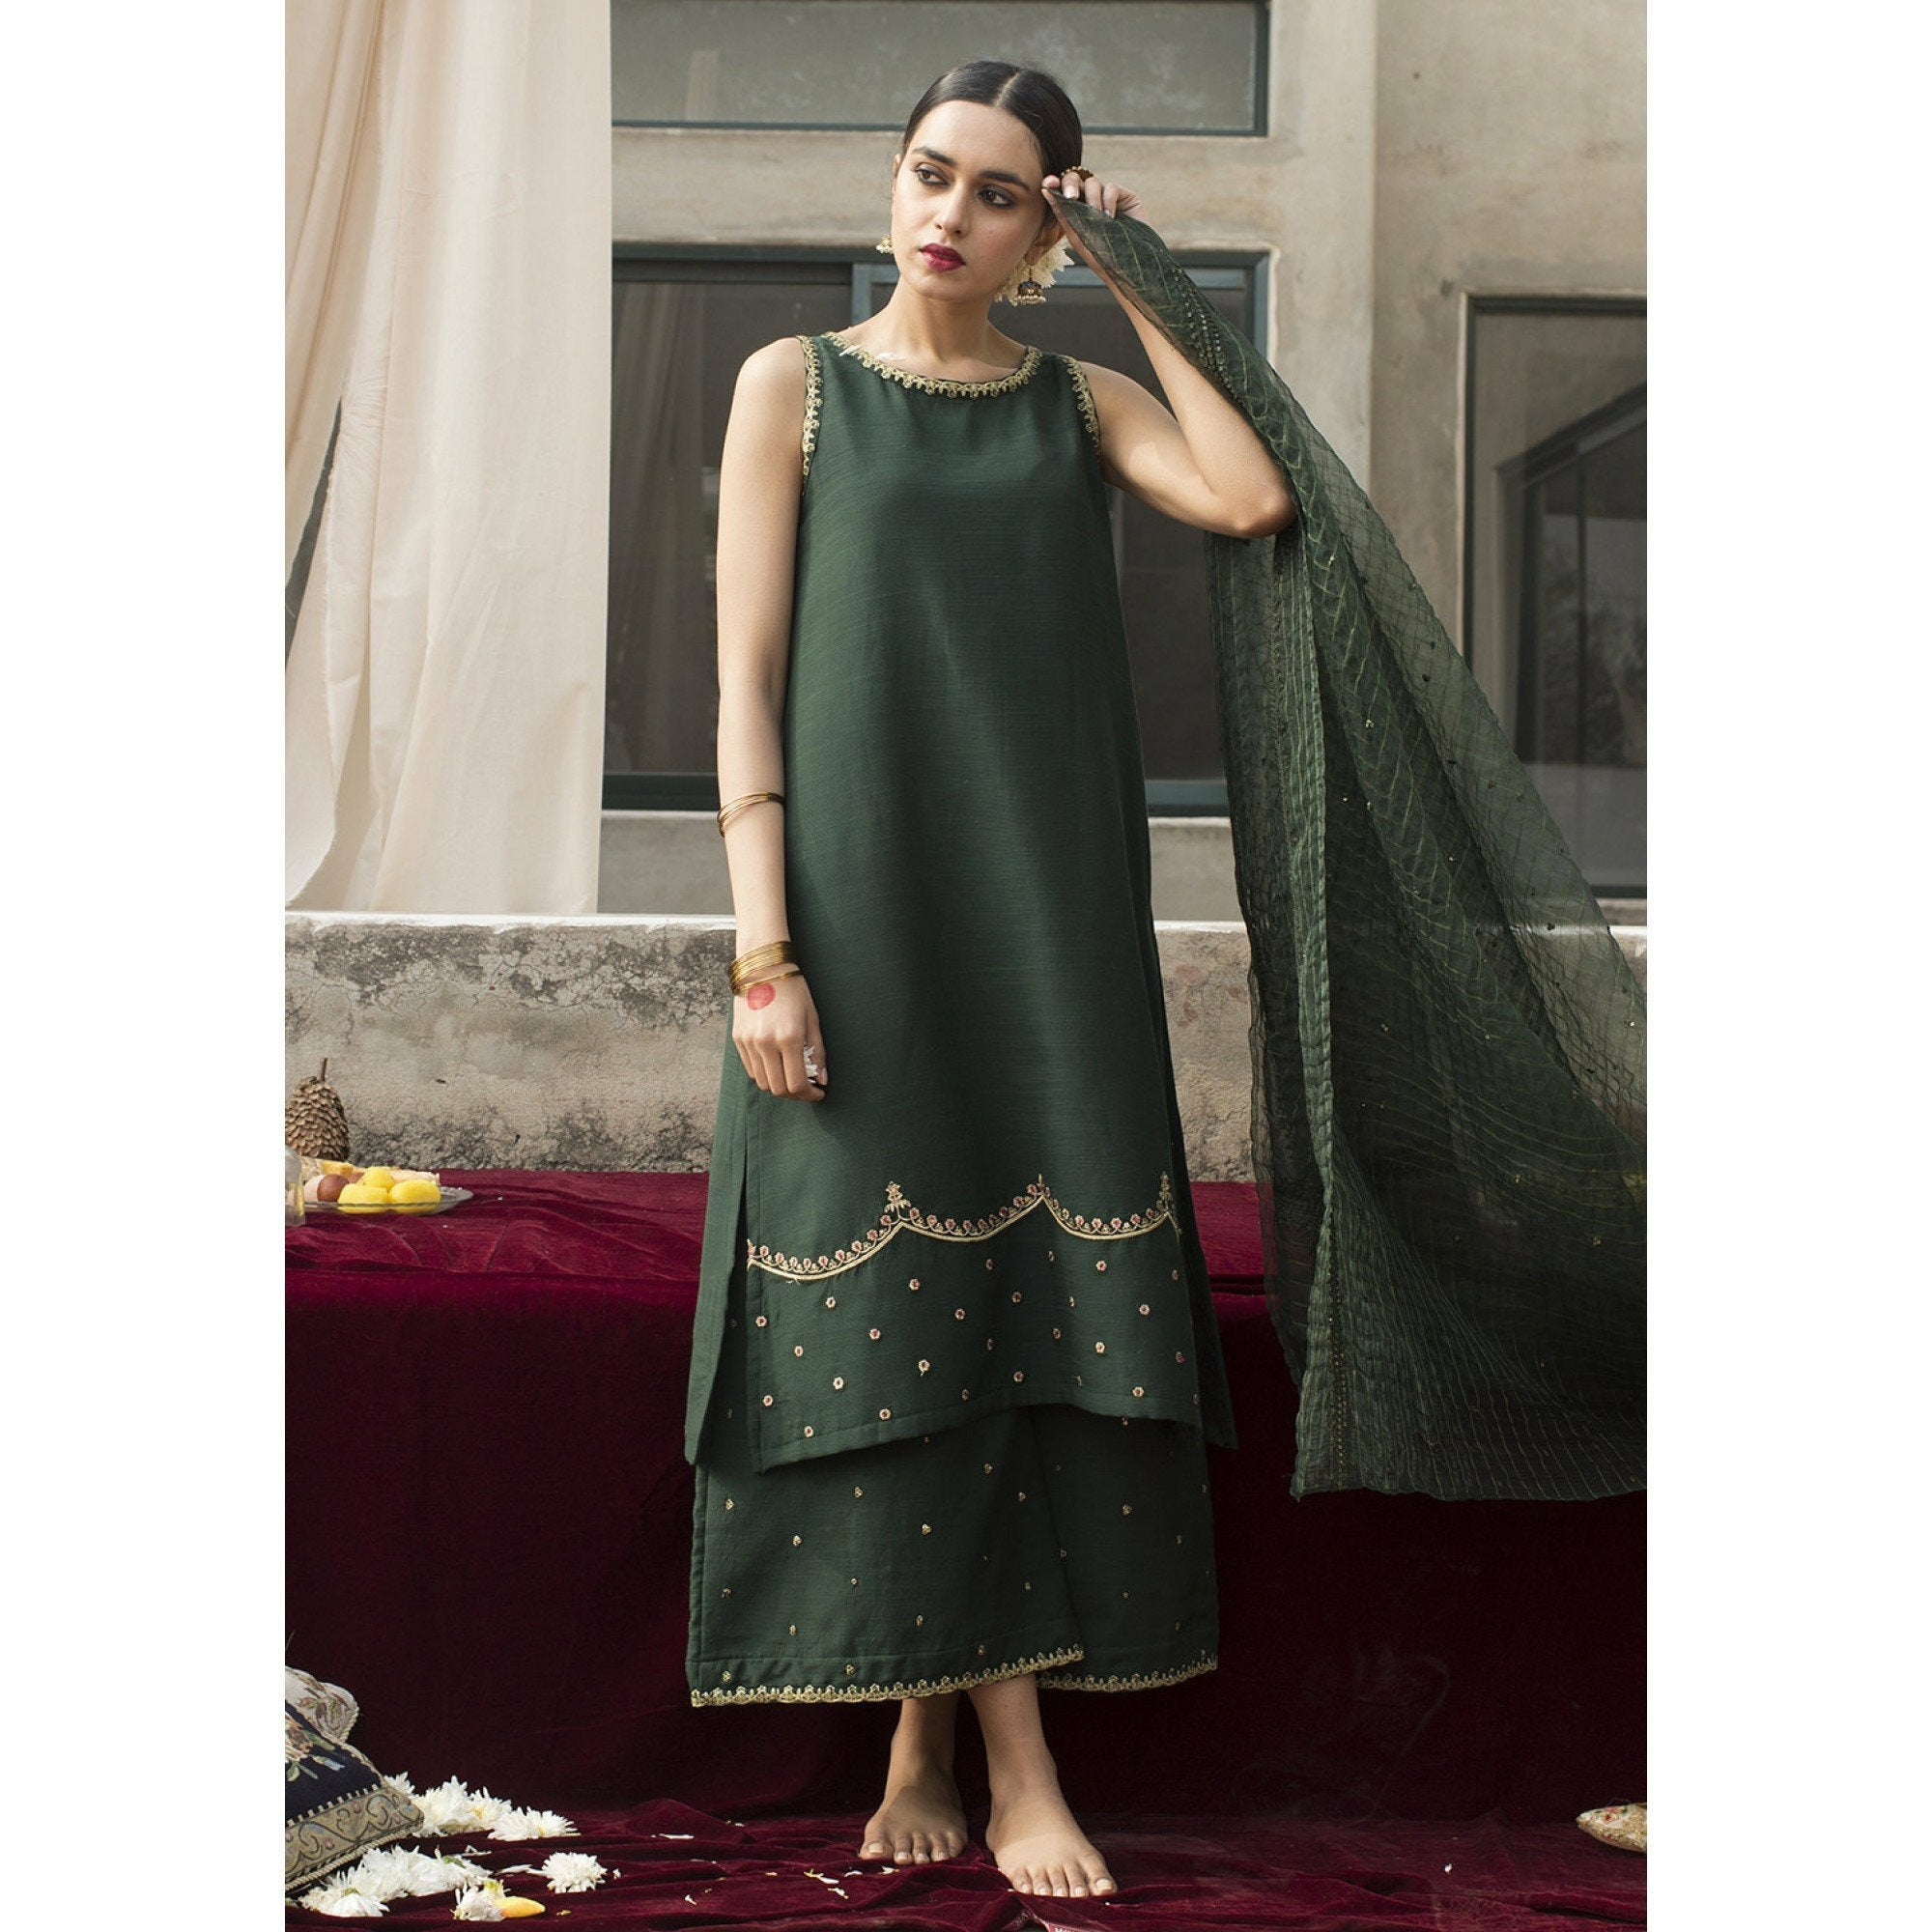 DYOT Roshanay - Bottle Green Outfit